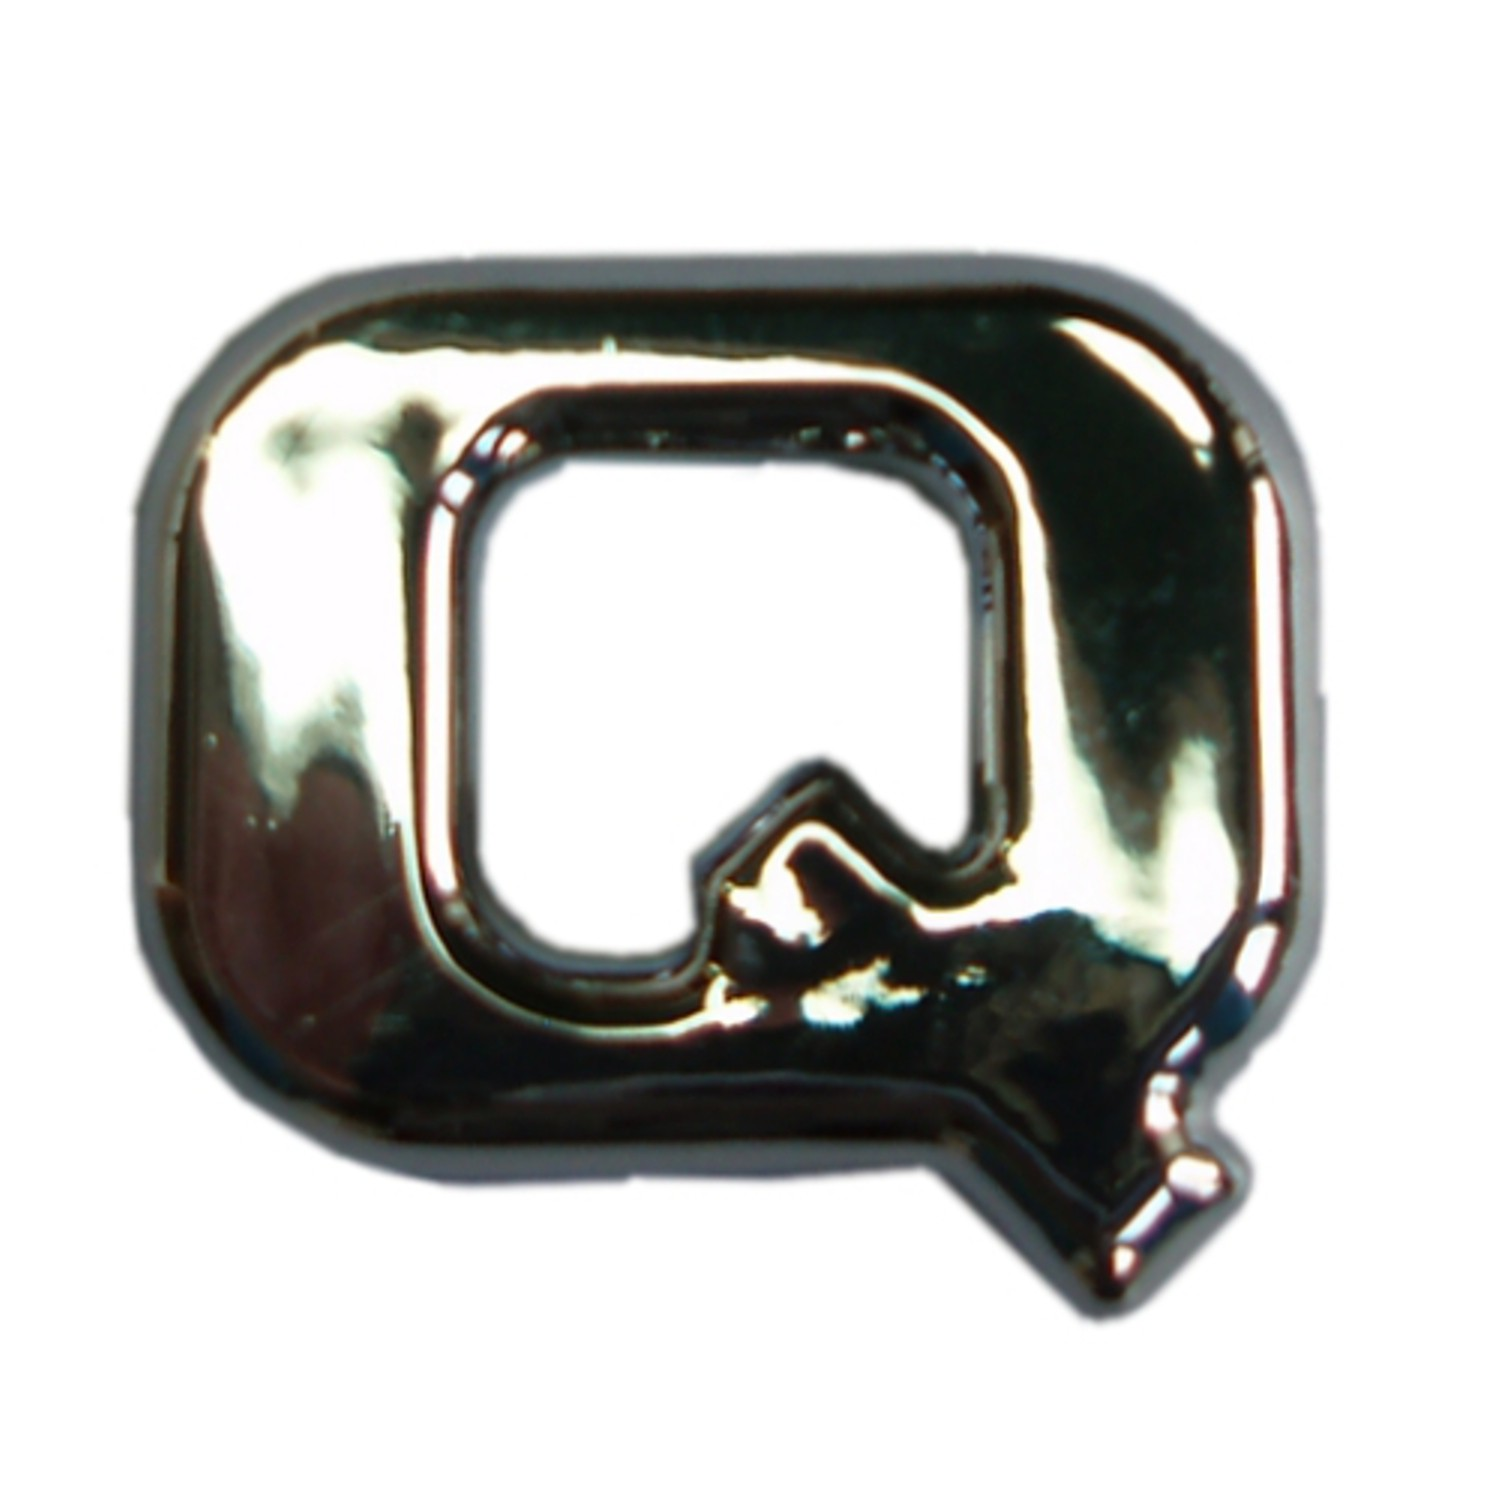 3D-Relief-Chrome-Buchstabe Q